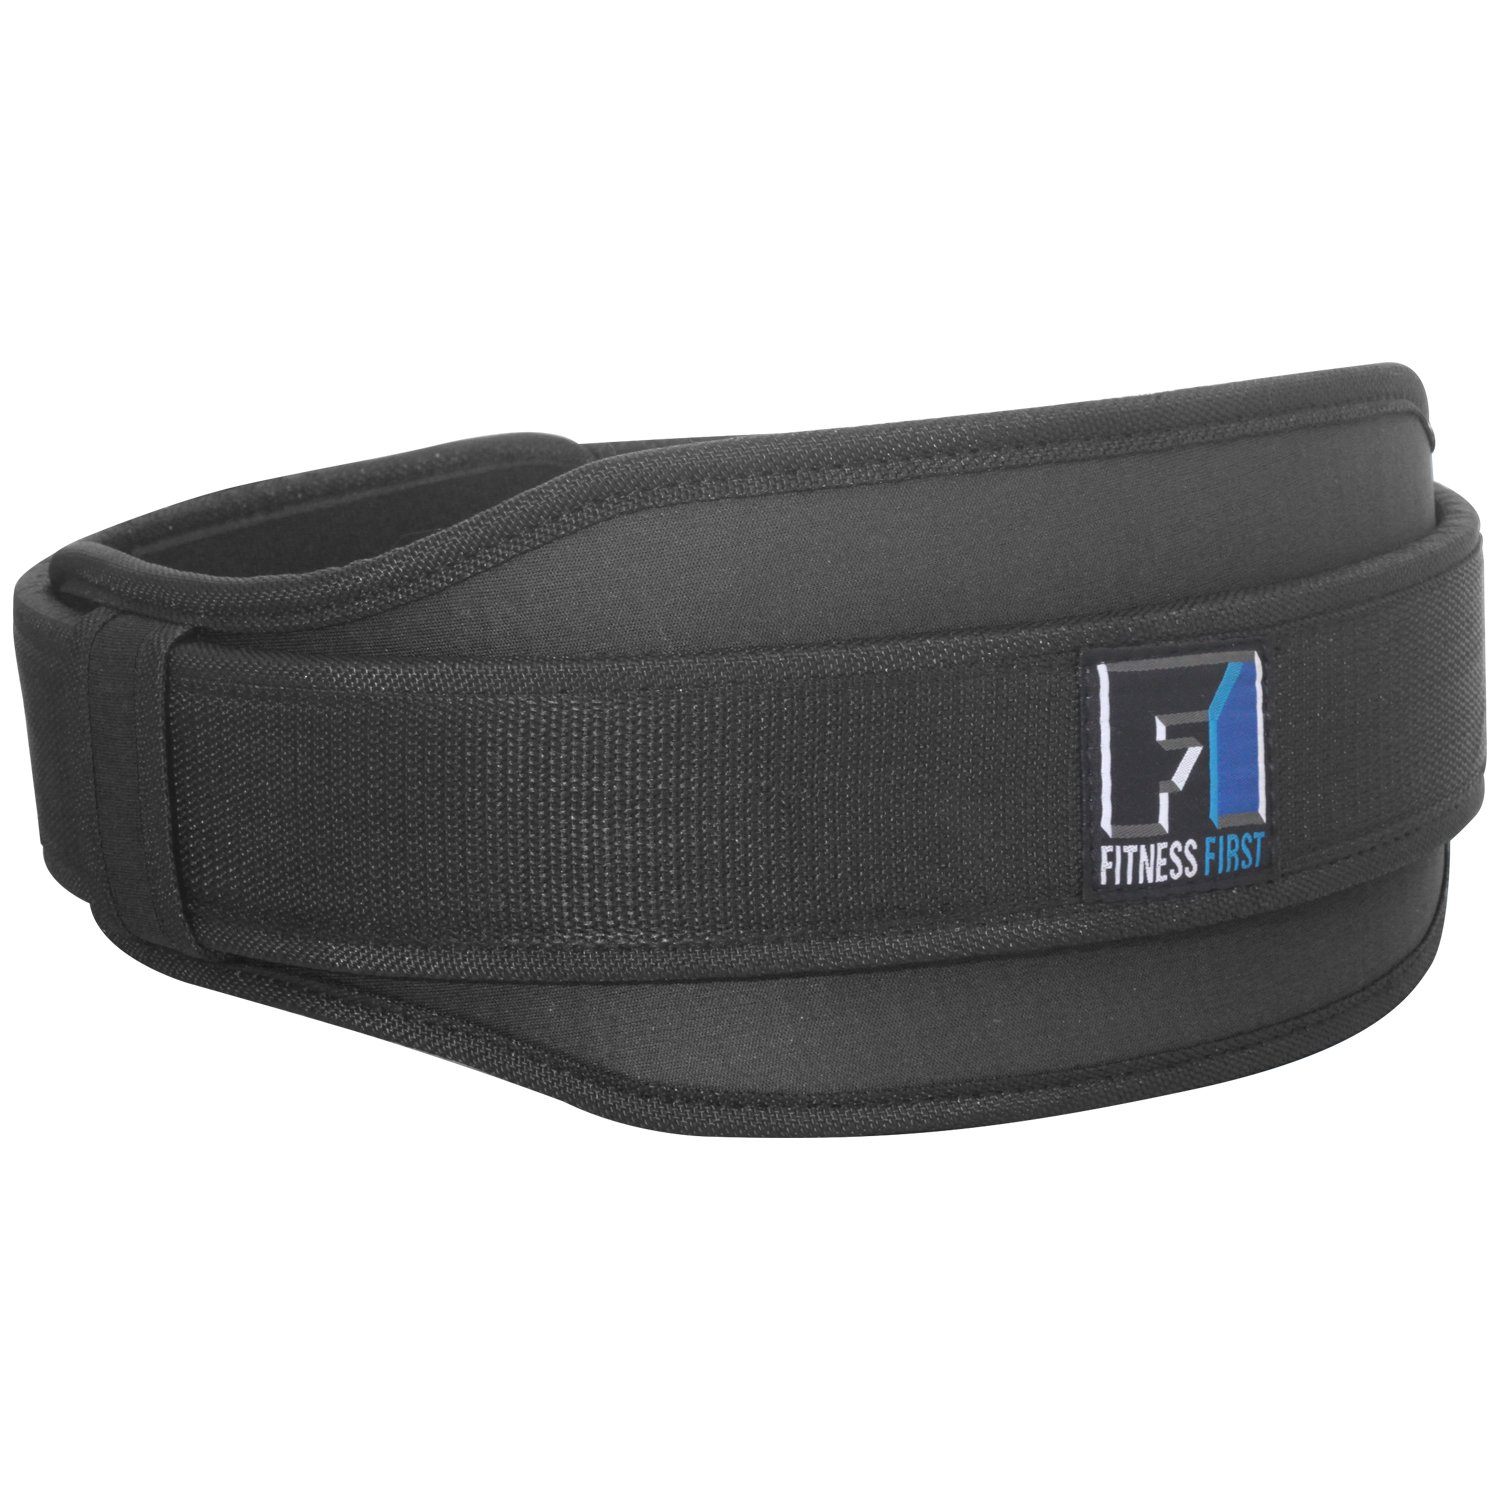 FIT1ST Fitness First Pro Weight Lifting Belt